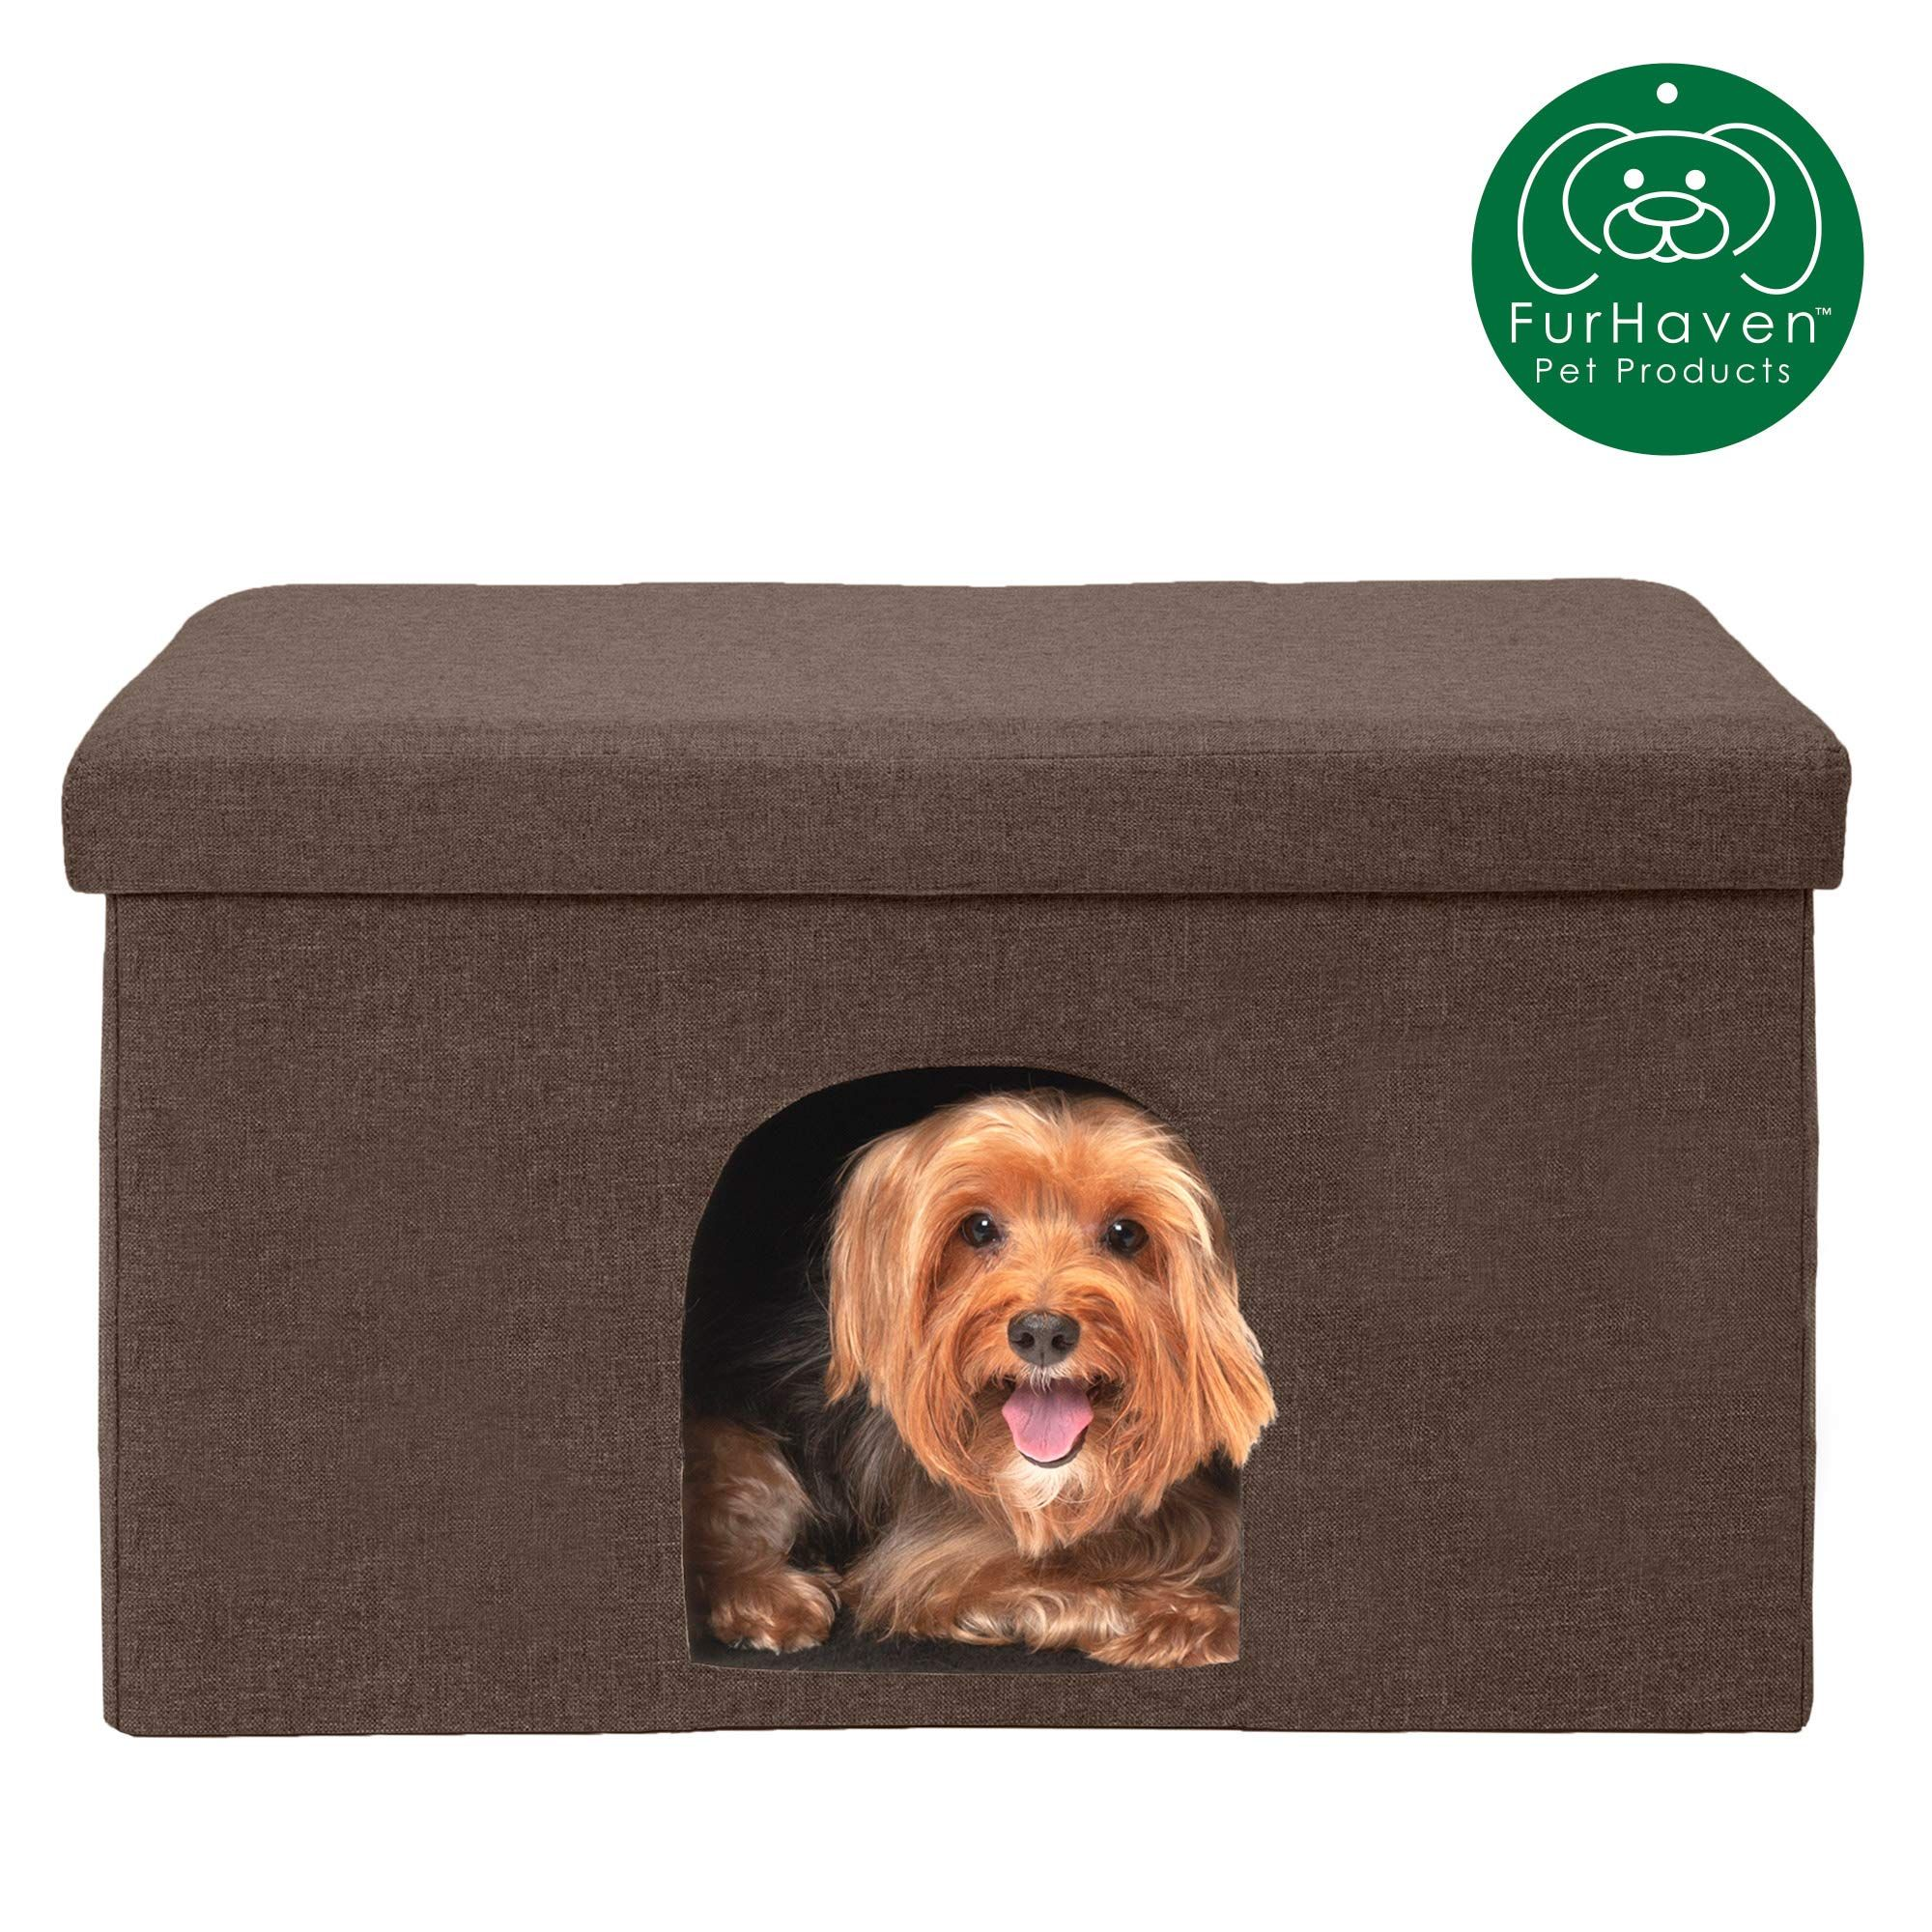 Furhaven Pet Dog Bed Felt Pet House Private Hideout Den And Collapsible Pop Up Living Room Ottoman Footstool Condo For Dog Bed Large Dog Pet Beds Small Dogs